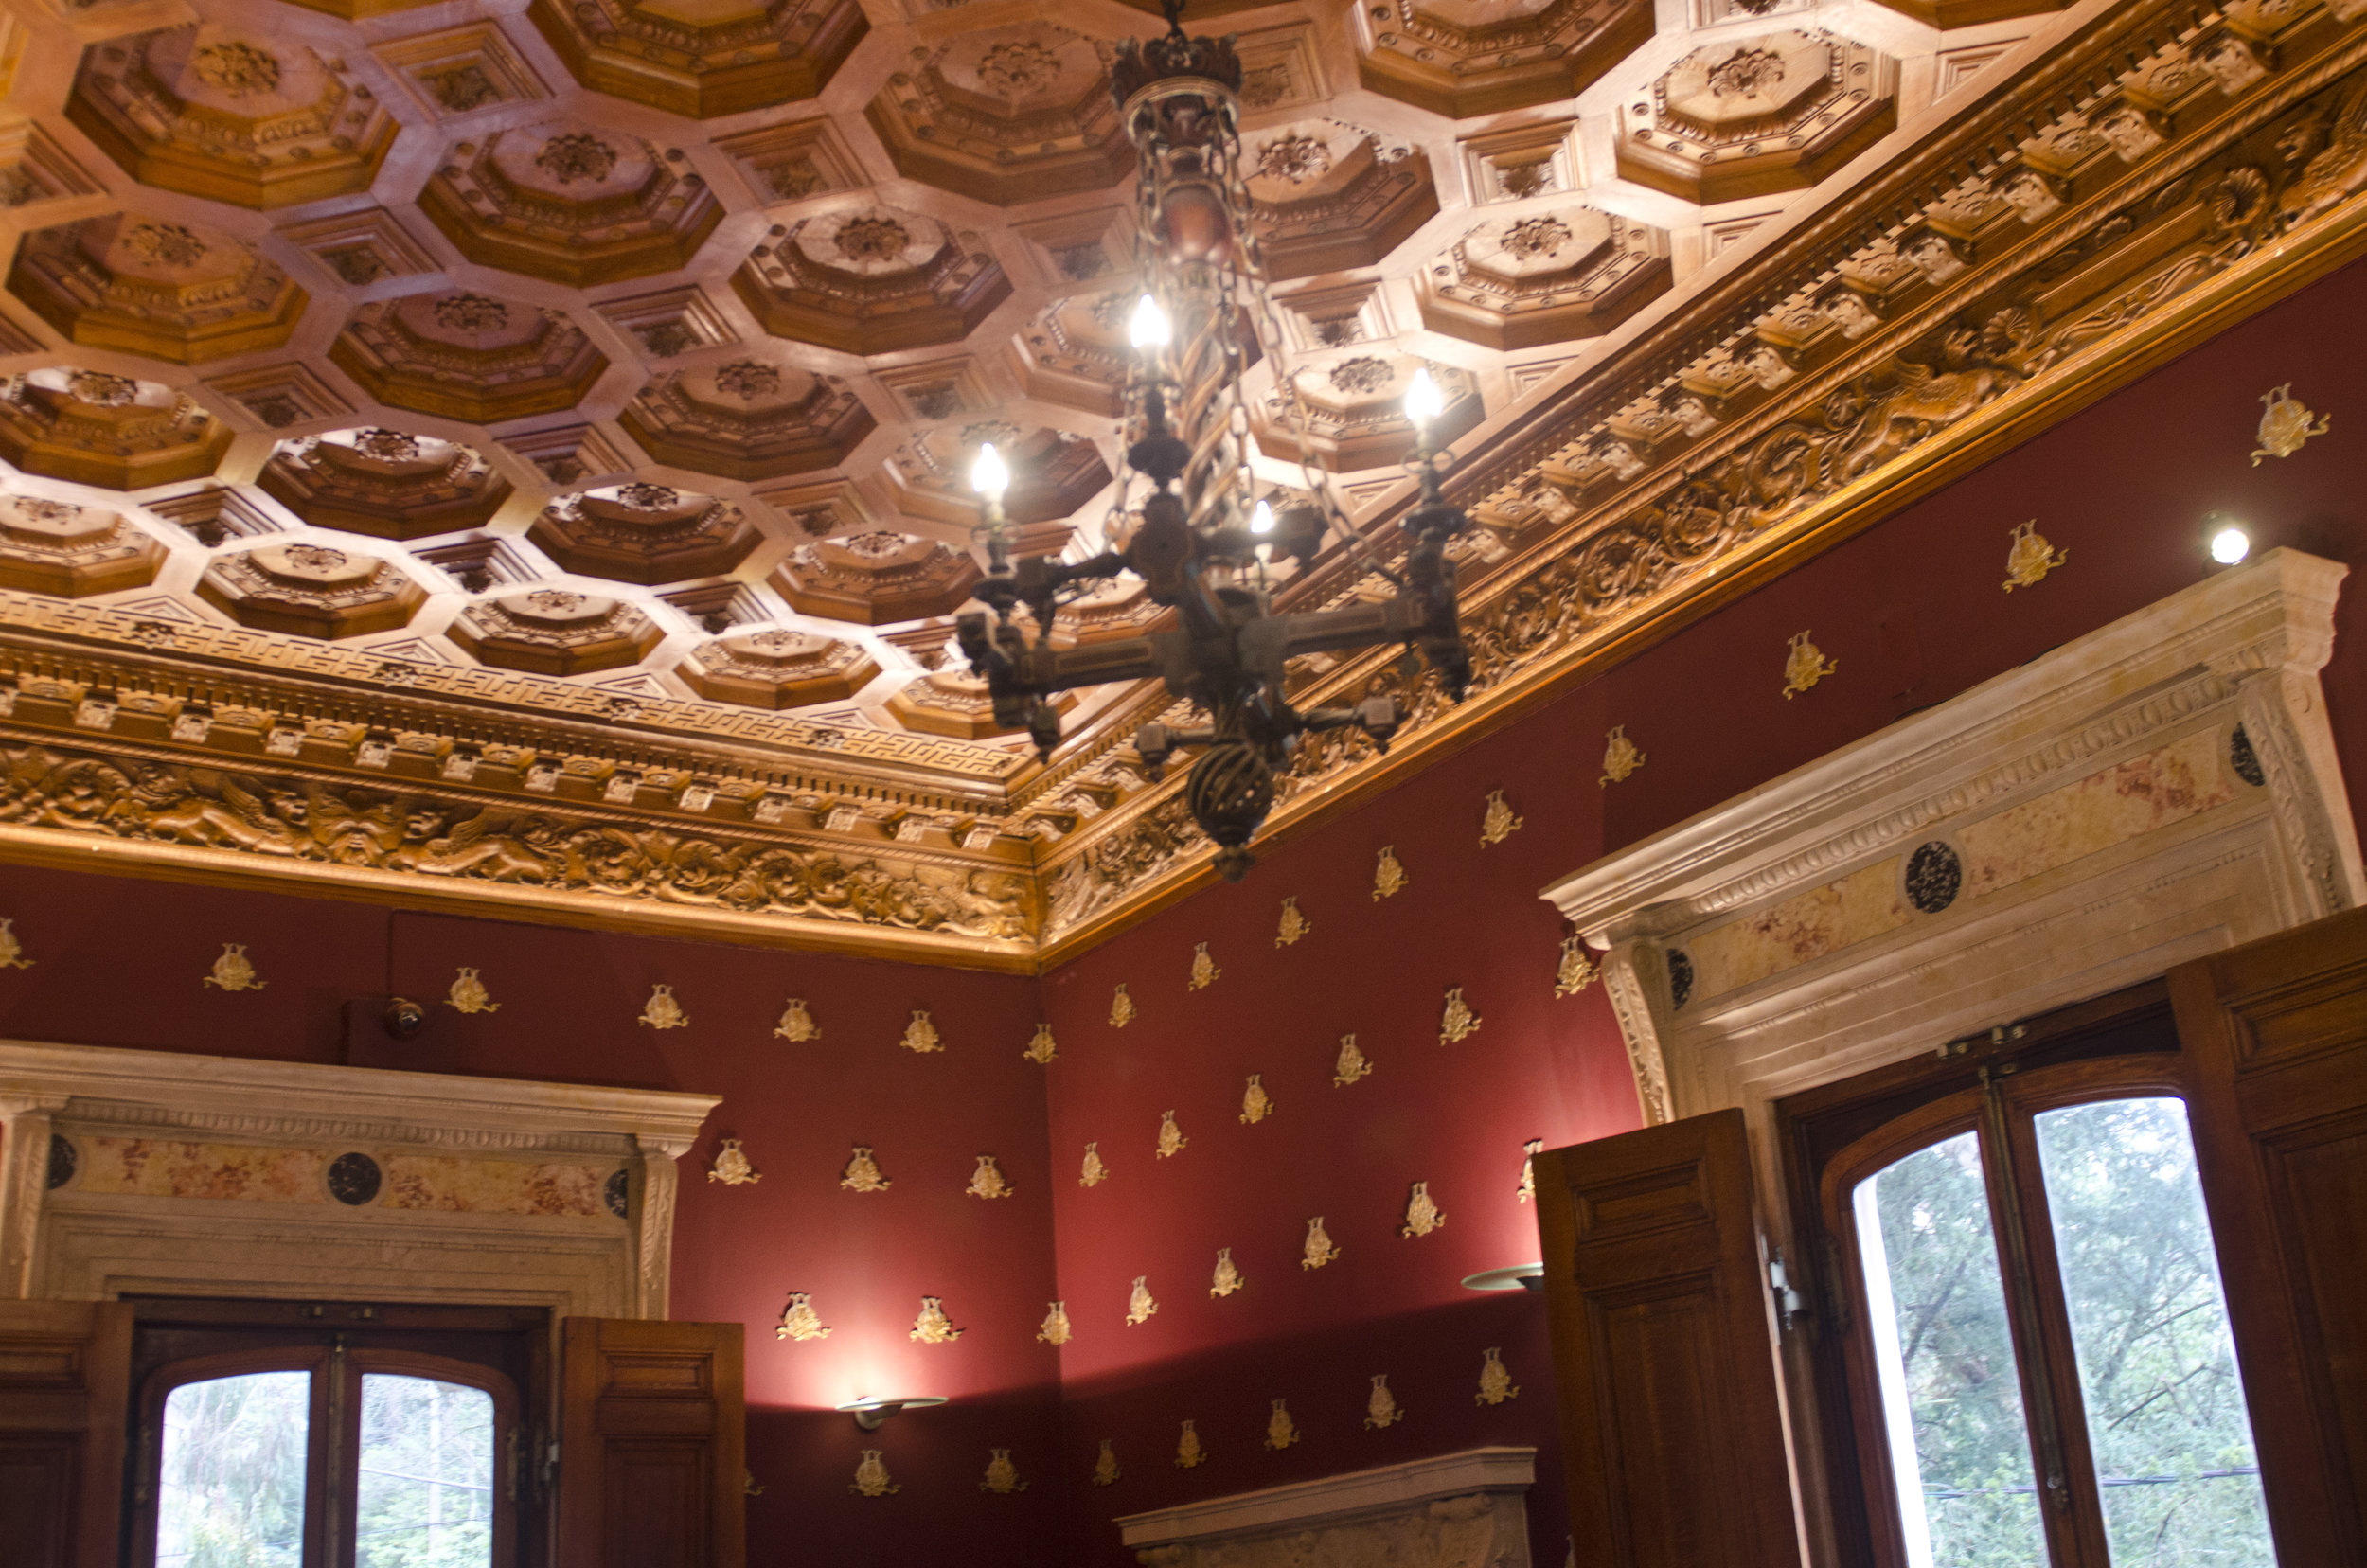 Can you imagine the time and effort required to create that ceiling?